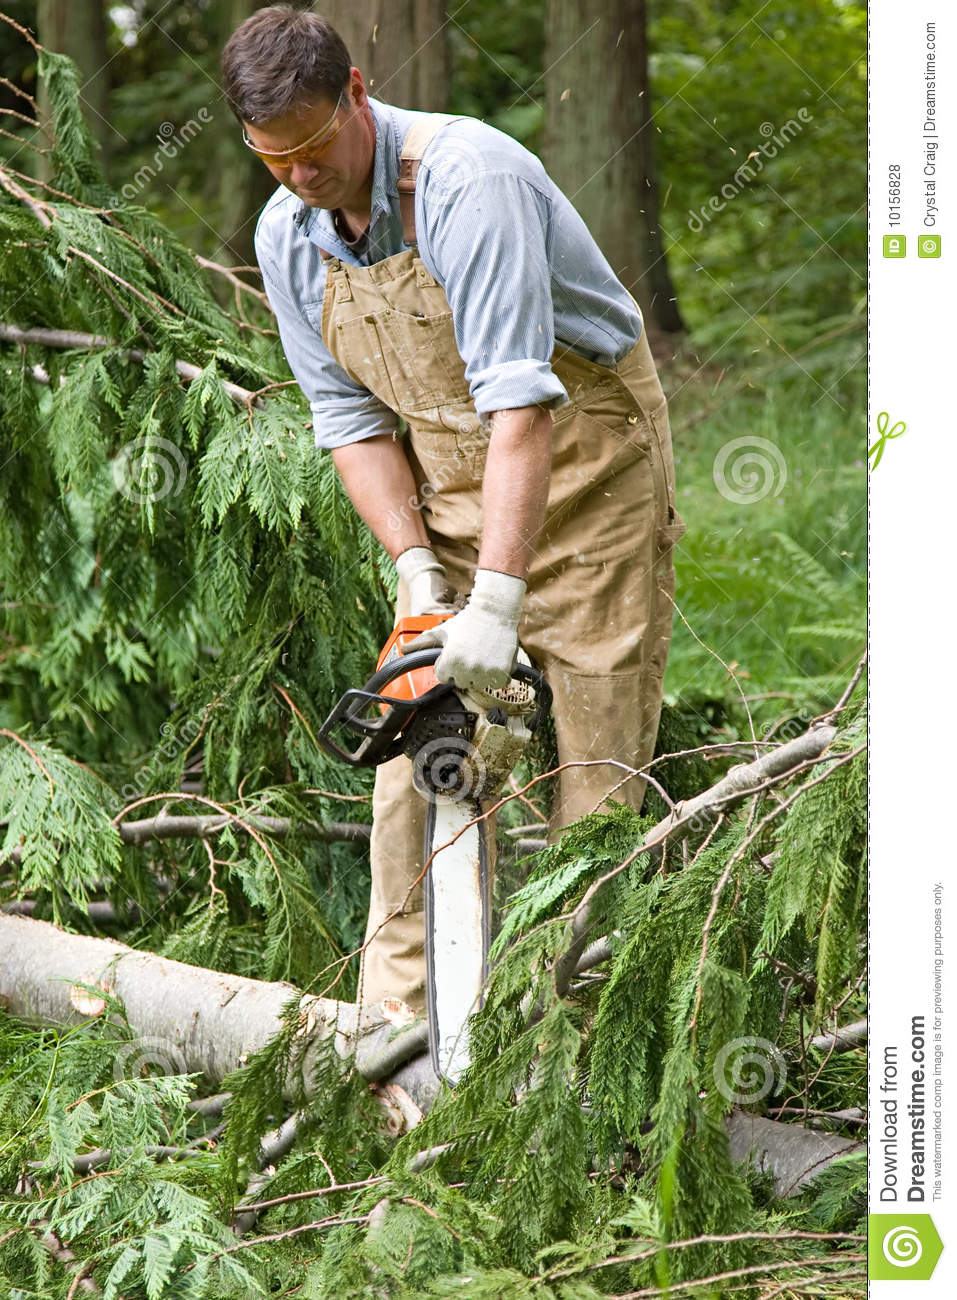 Using chainsaw